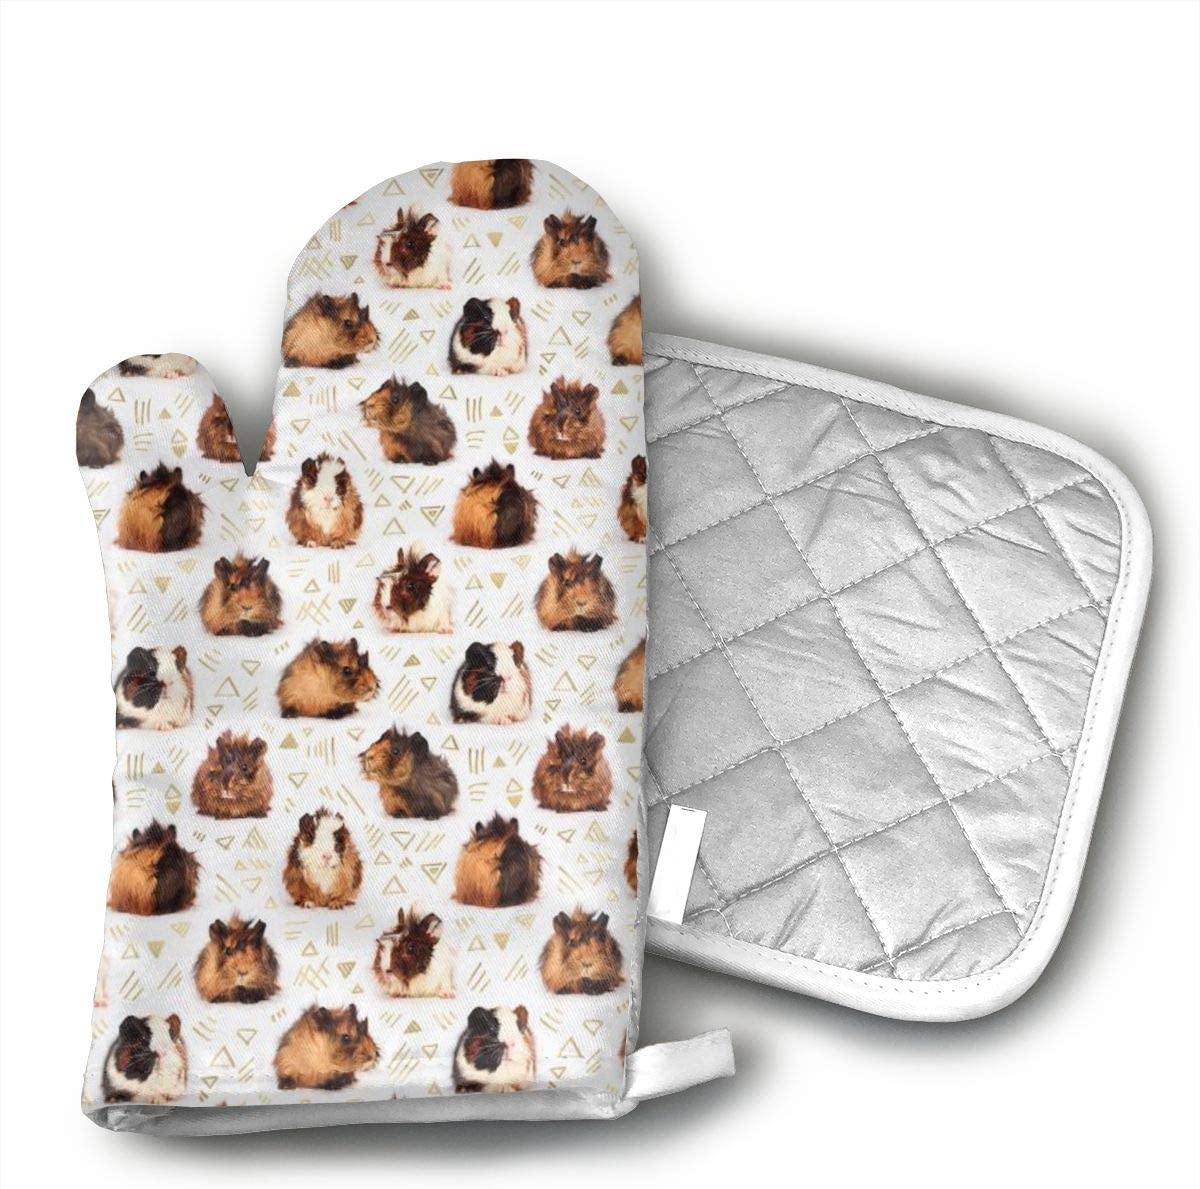 Star Blue Design Guinea Pigs Oven Mitts & Heat Resistant Pot Holder - with Polyester Cotton Non-Slip Grip, Best Used As Baking, Grilling, BBQ, Cooking, Kitchen Or Oven Gloves